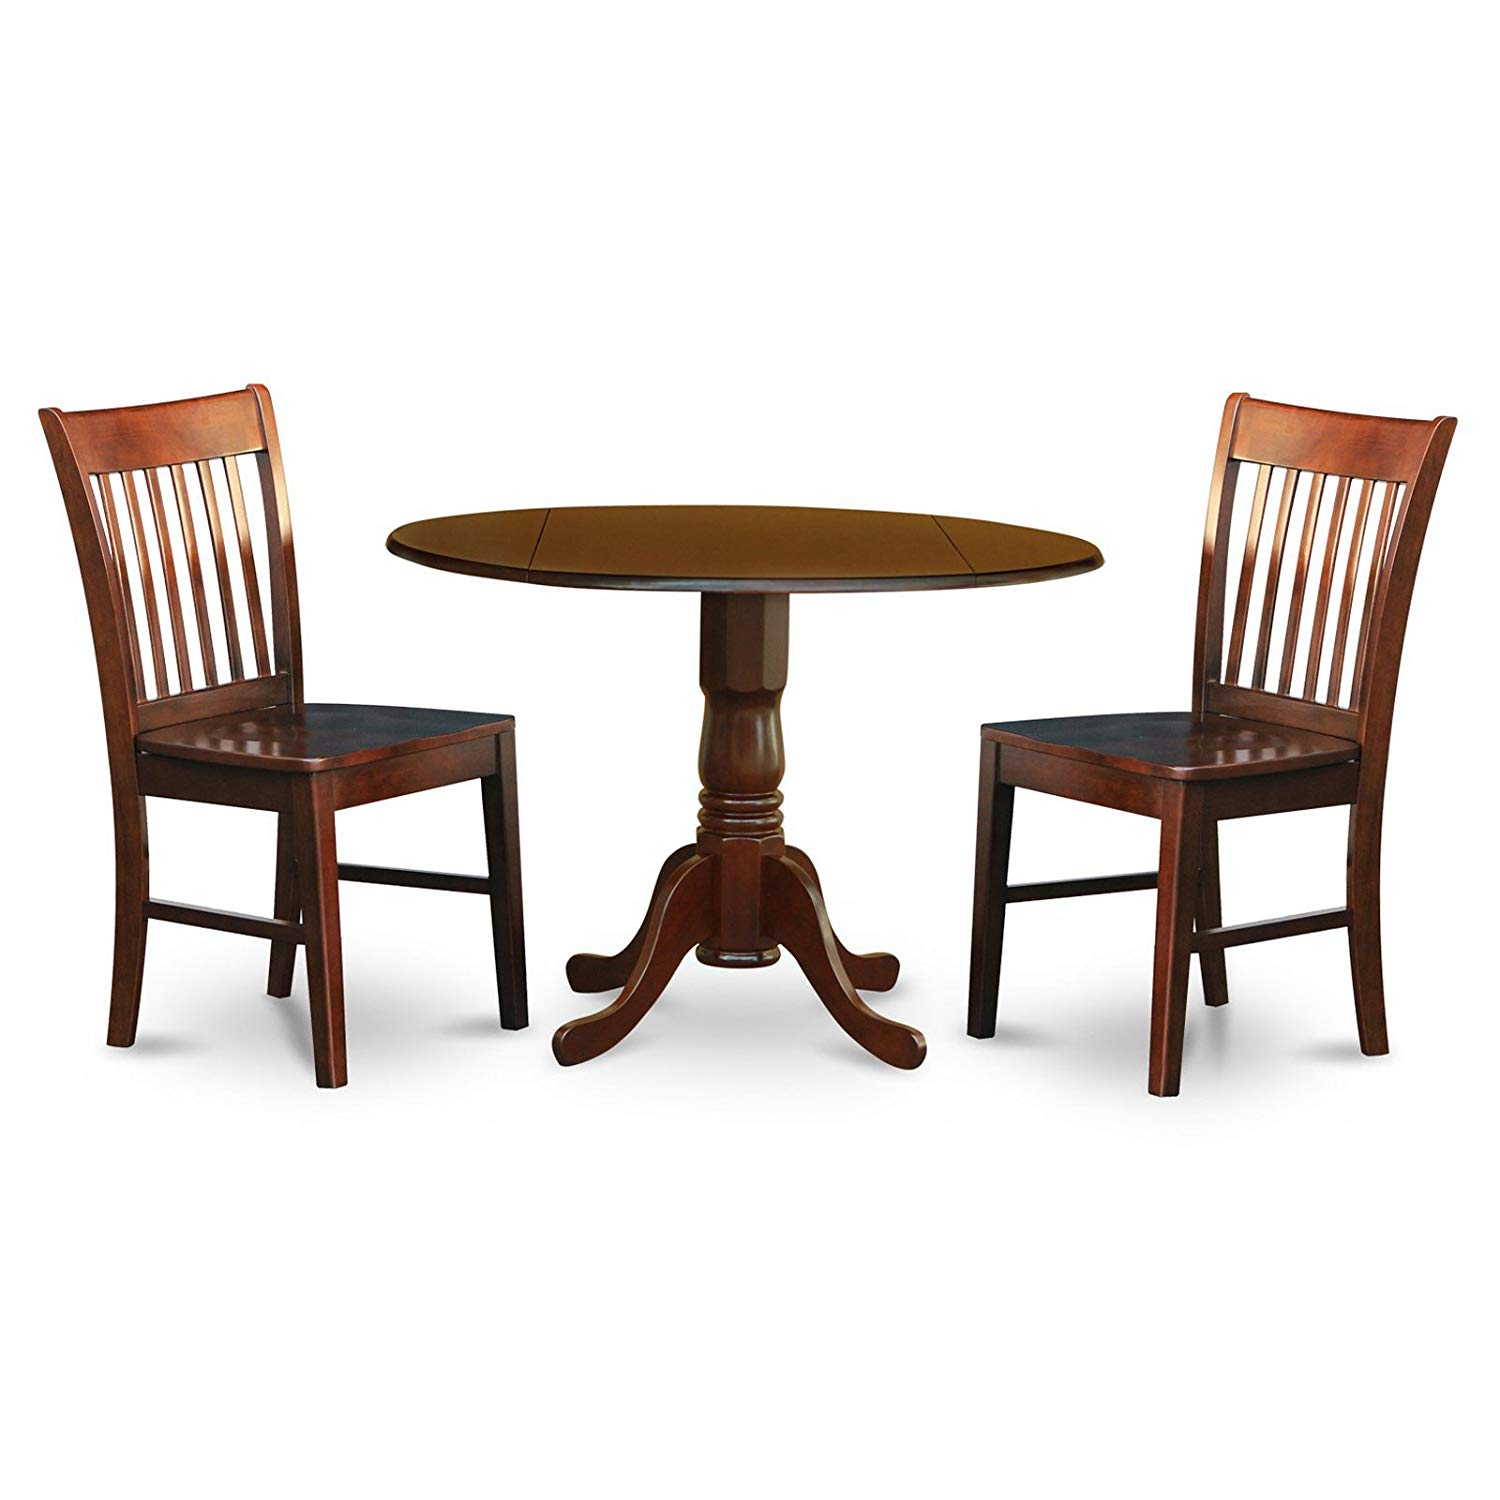 Childrens Wooden Table And Chairs Cheap Wooden Child Table And Chairs Find Wooden Child Table And